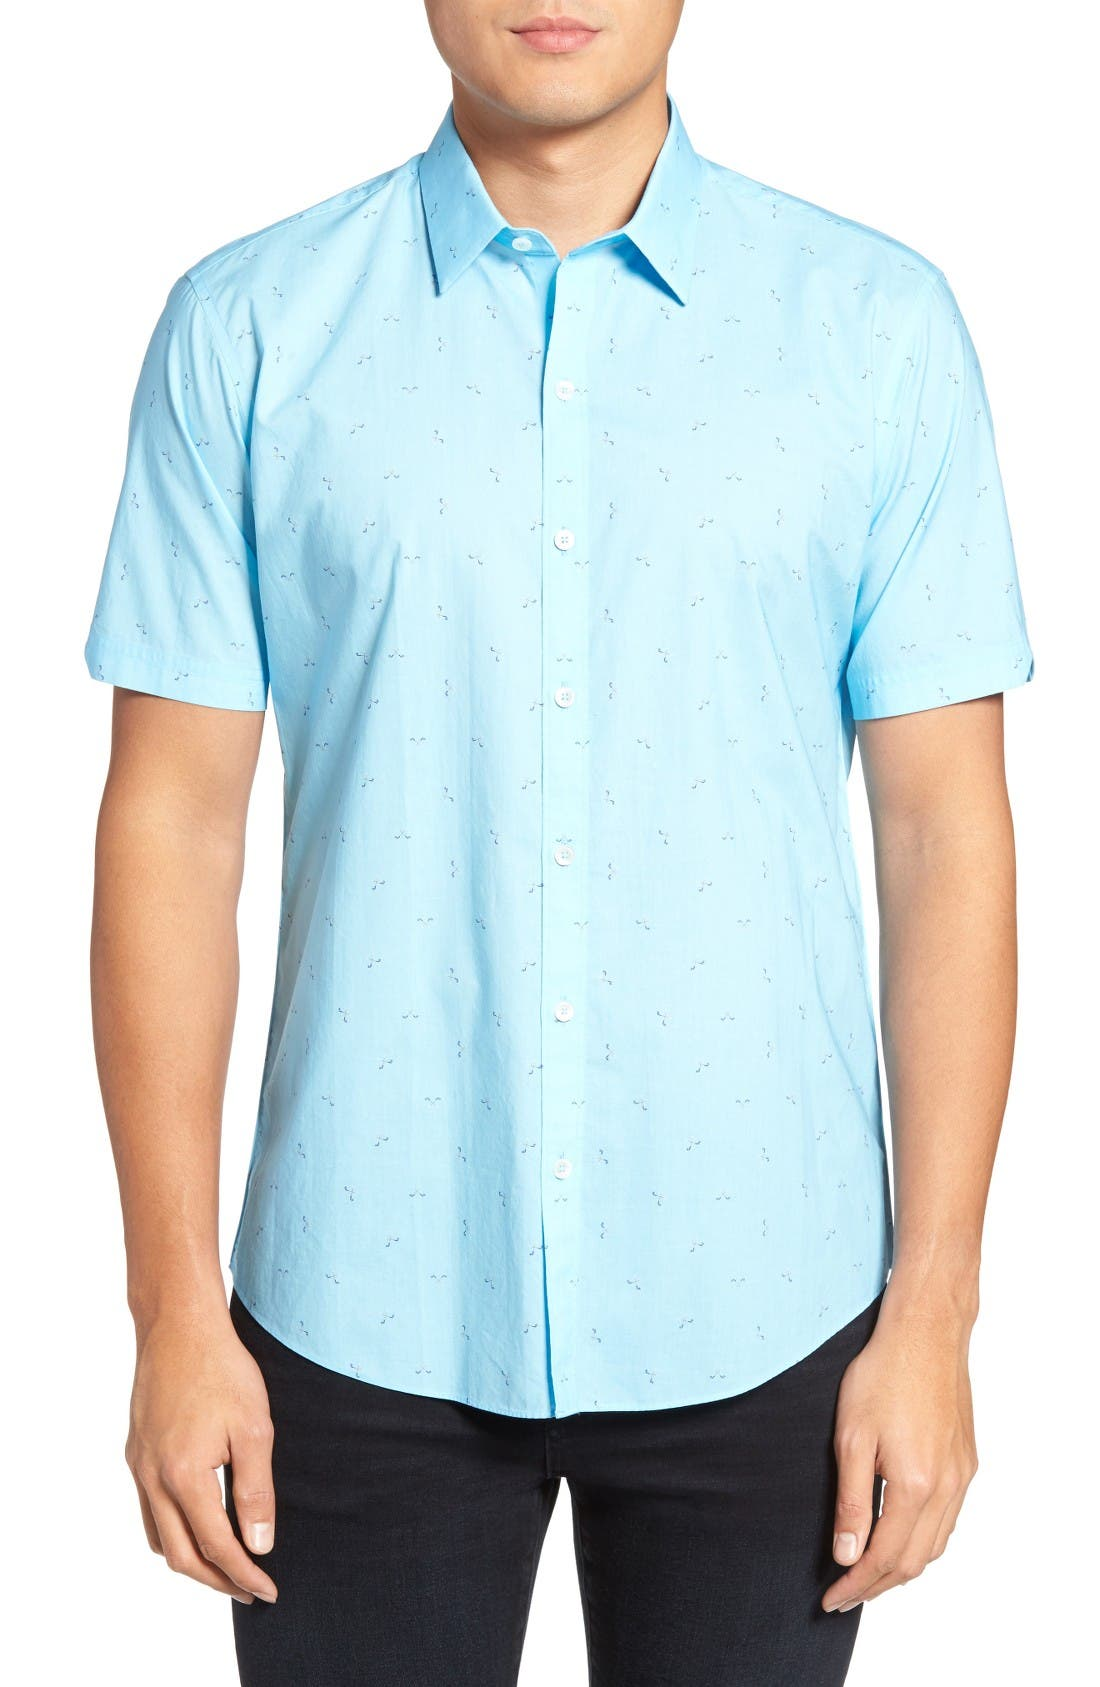 Weinman Regular Fit Print Short Sleeve Sport Shirt,                         Main,                         color, Turquoise